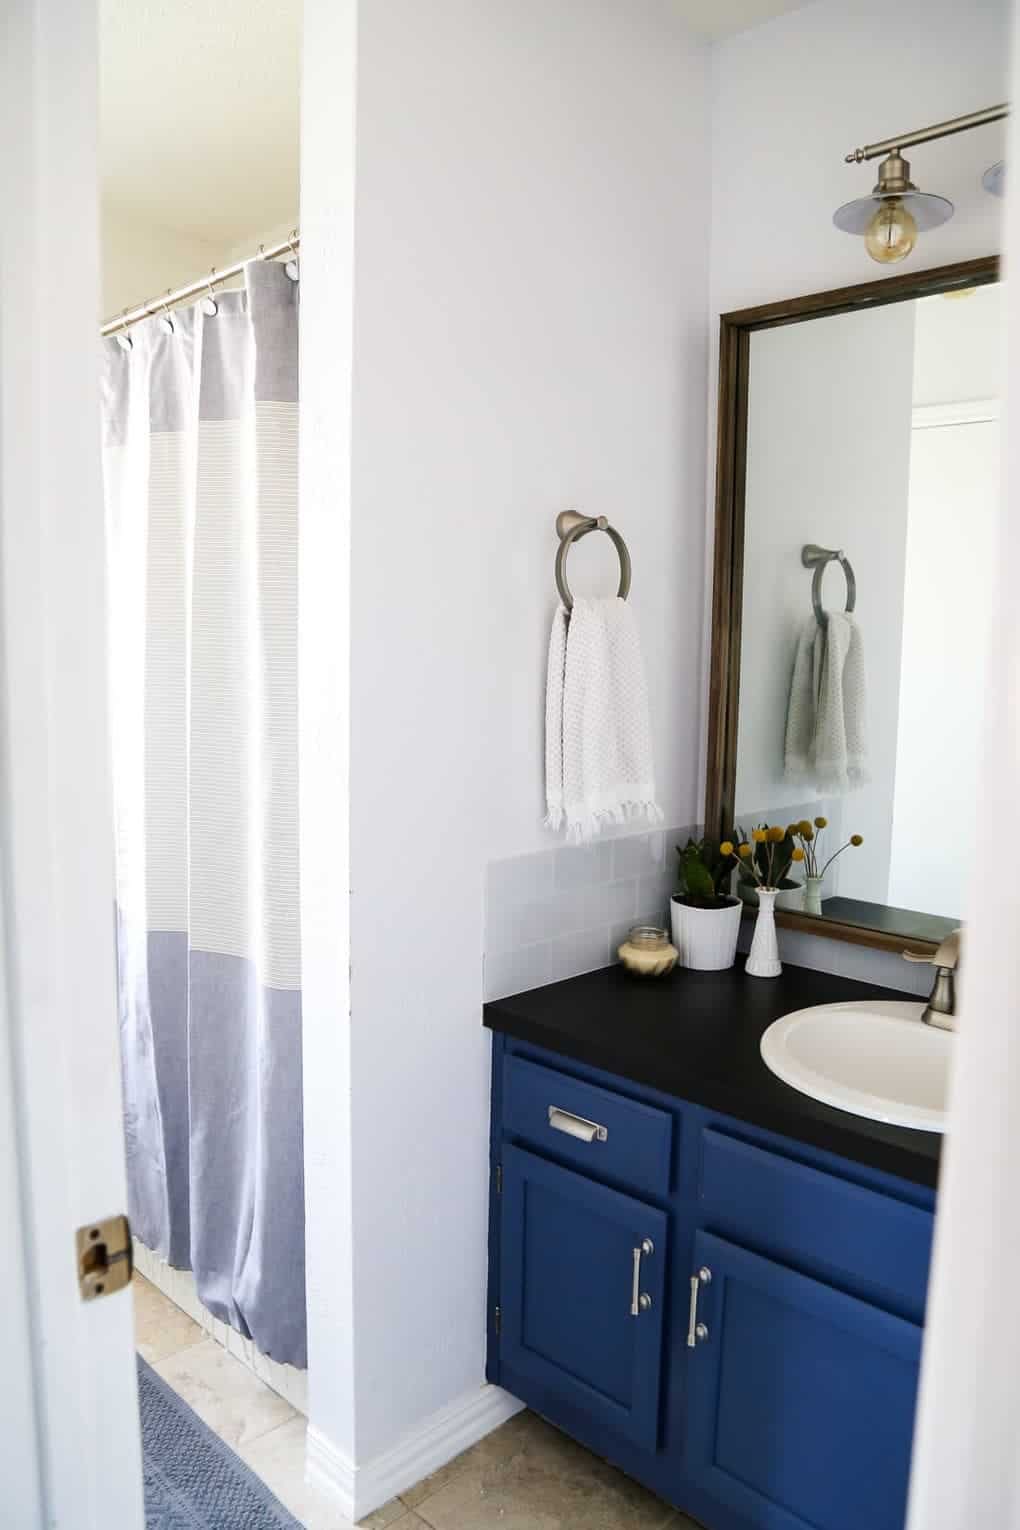 aA DIY modern, serene bathroom renovation that can be completed in a weekend. Great ideas for how to upgrade an ugly bathroom and make it look like new without a ton of time or money.